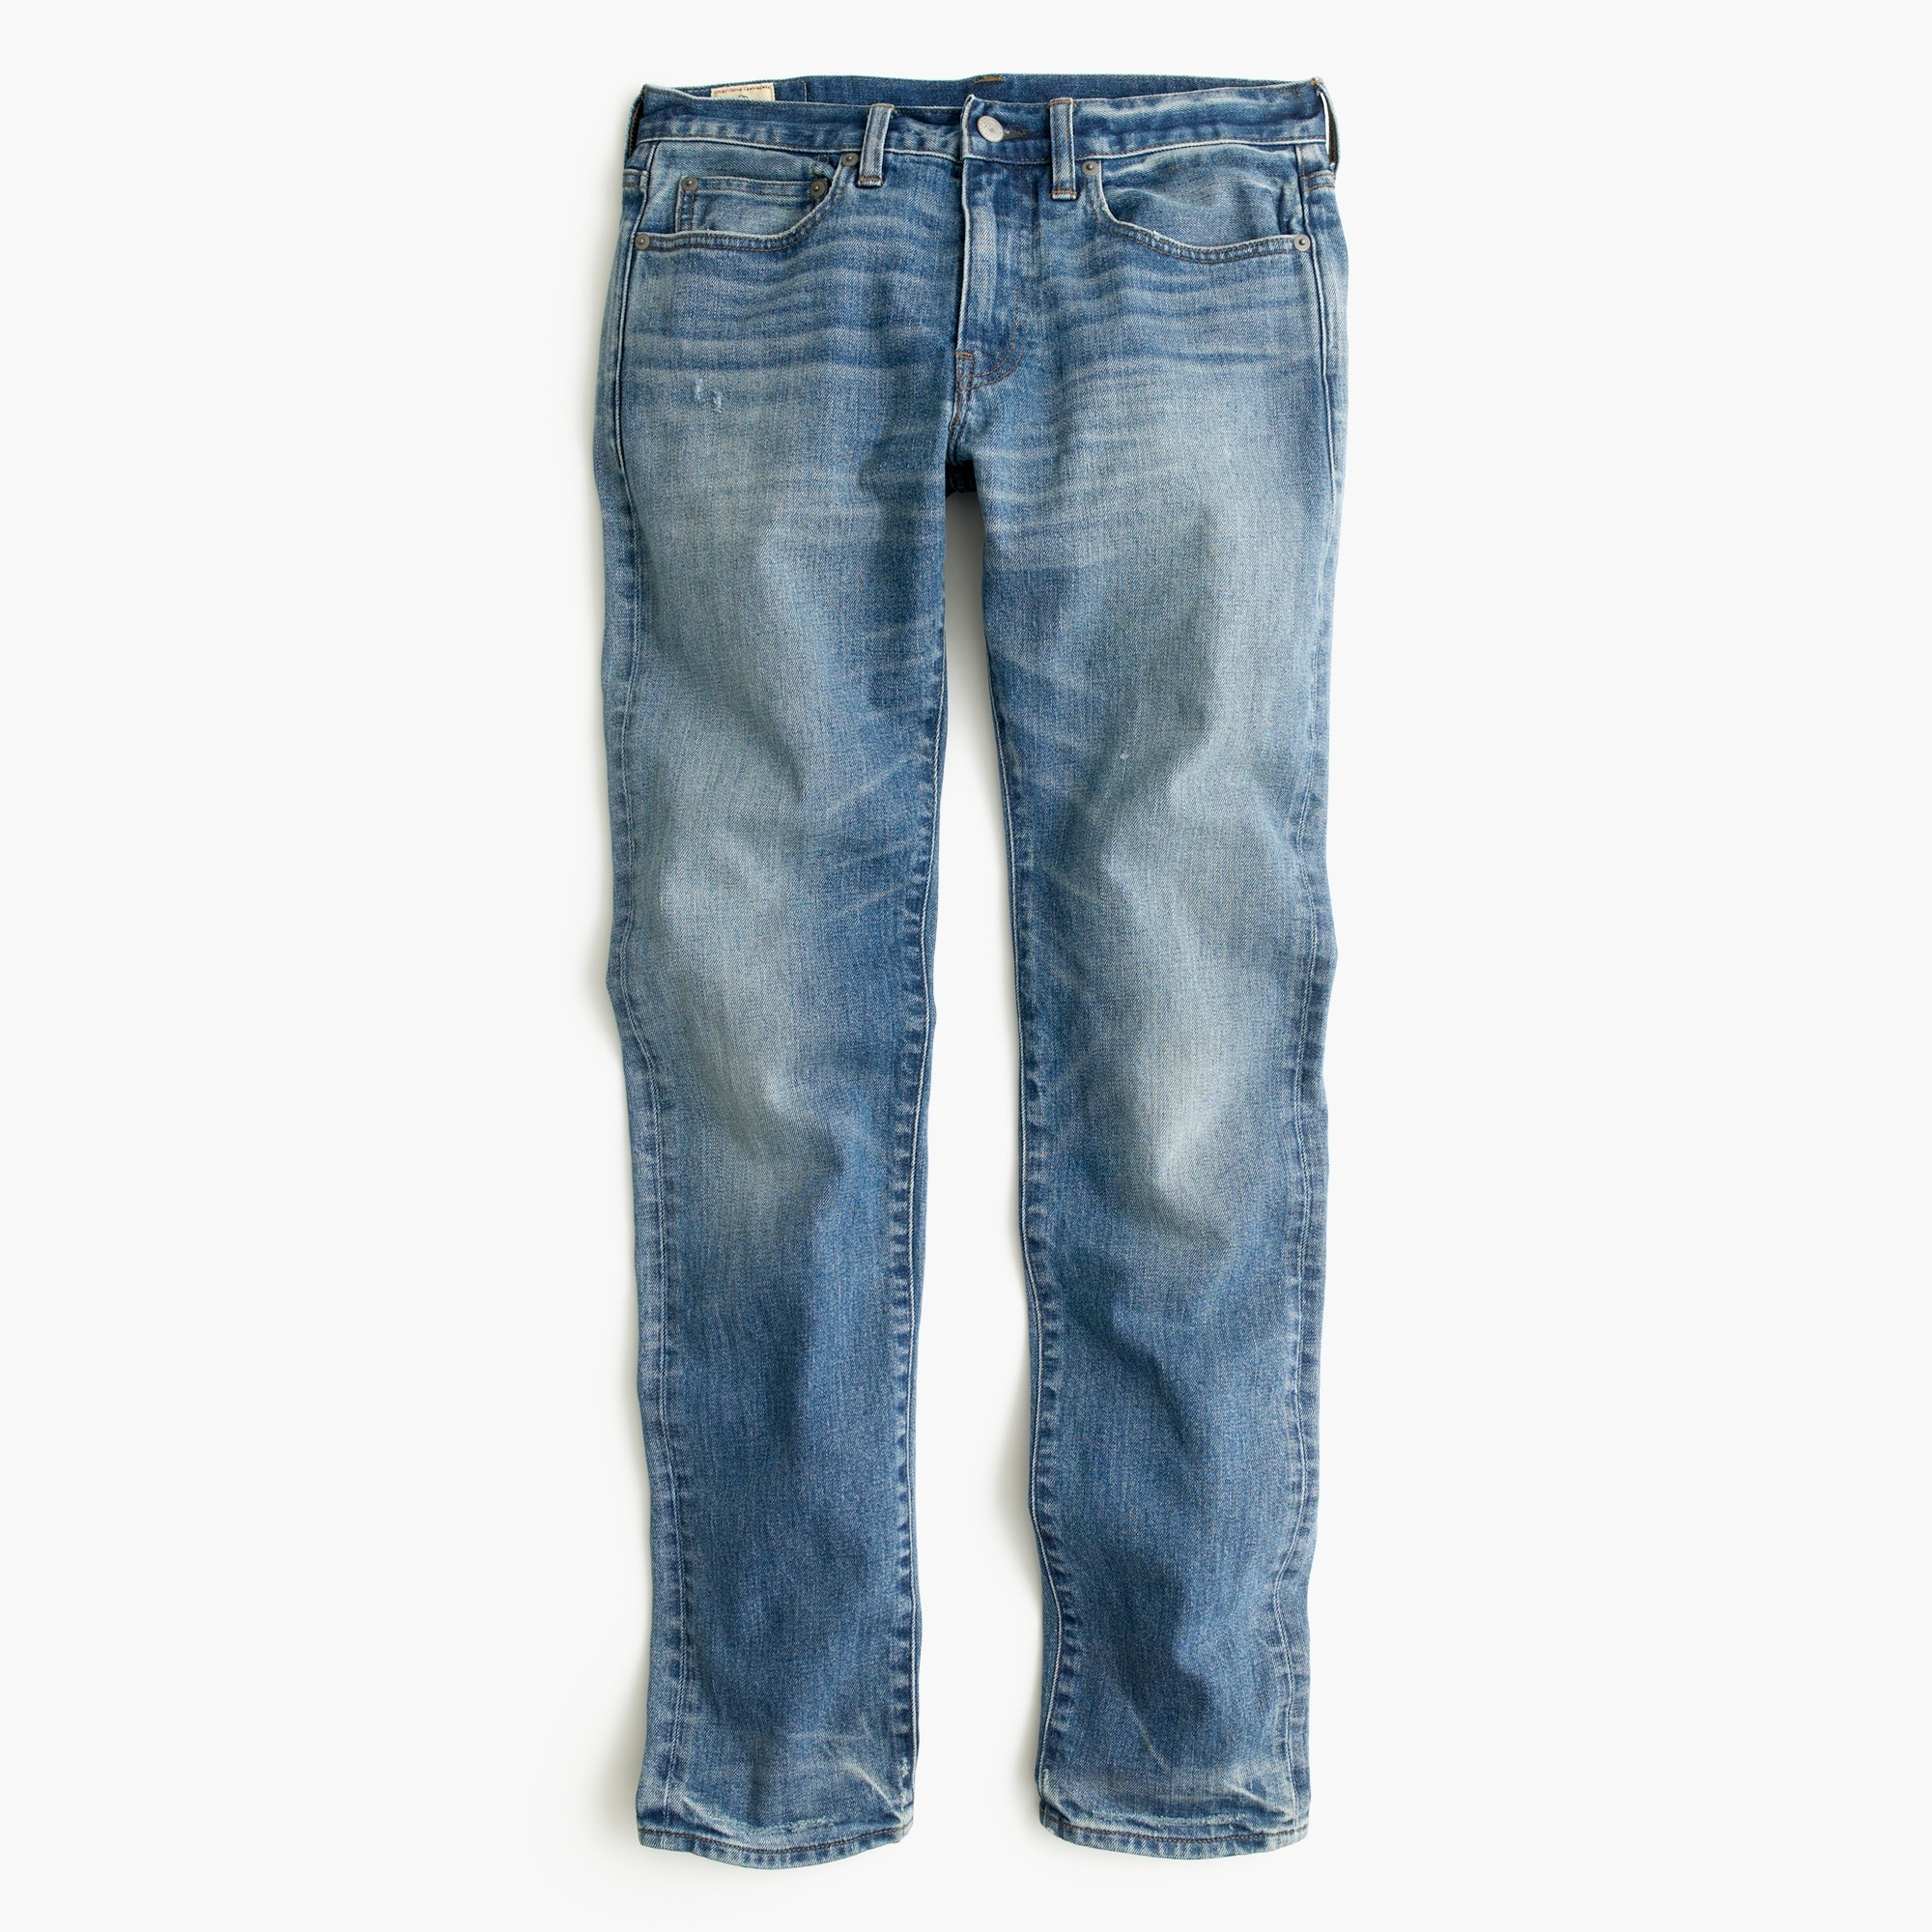 484 Slim-fit stretch jean in Whitford wash